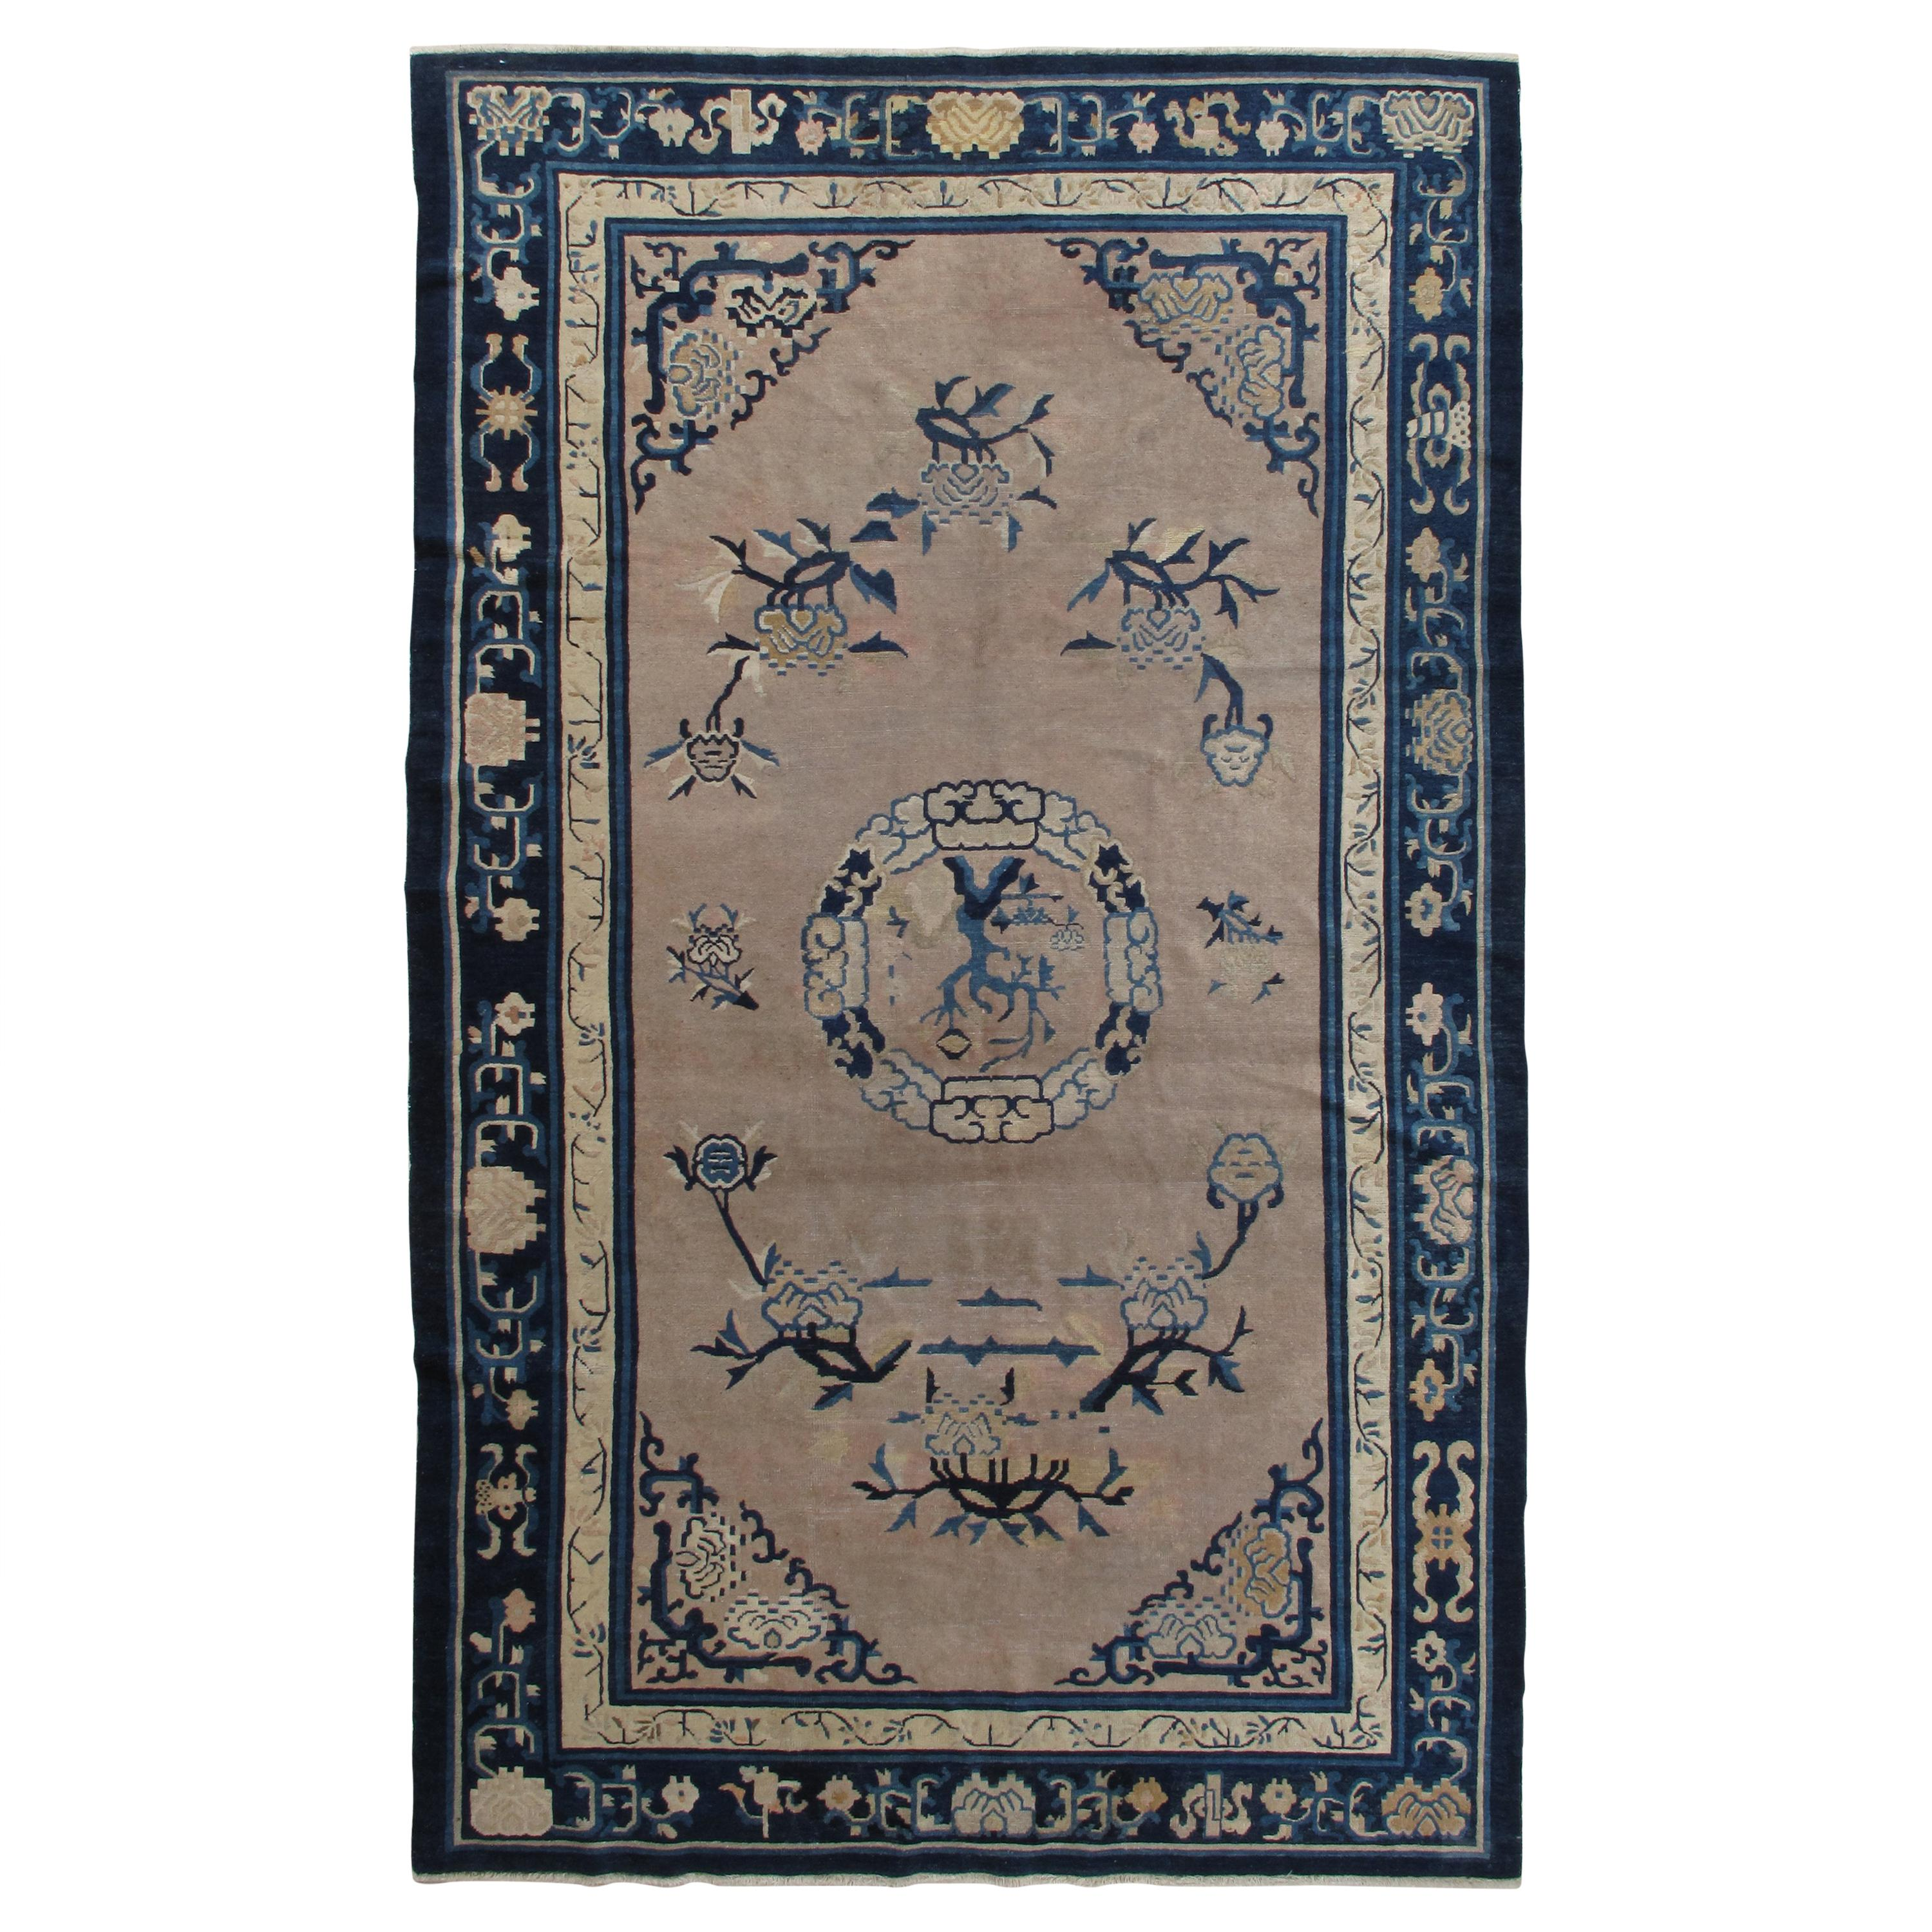 Antique Chinese Rug, Tan and Blue Oriental Handmade Wool Rug